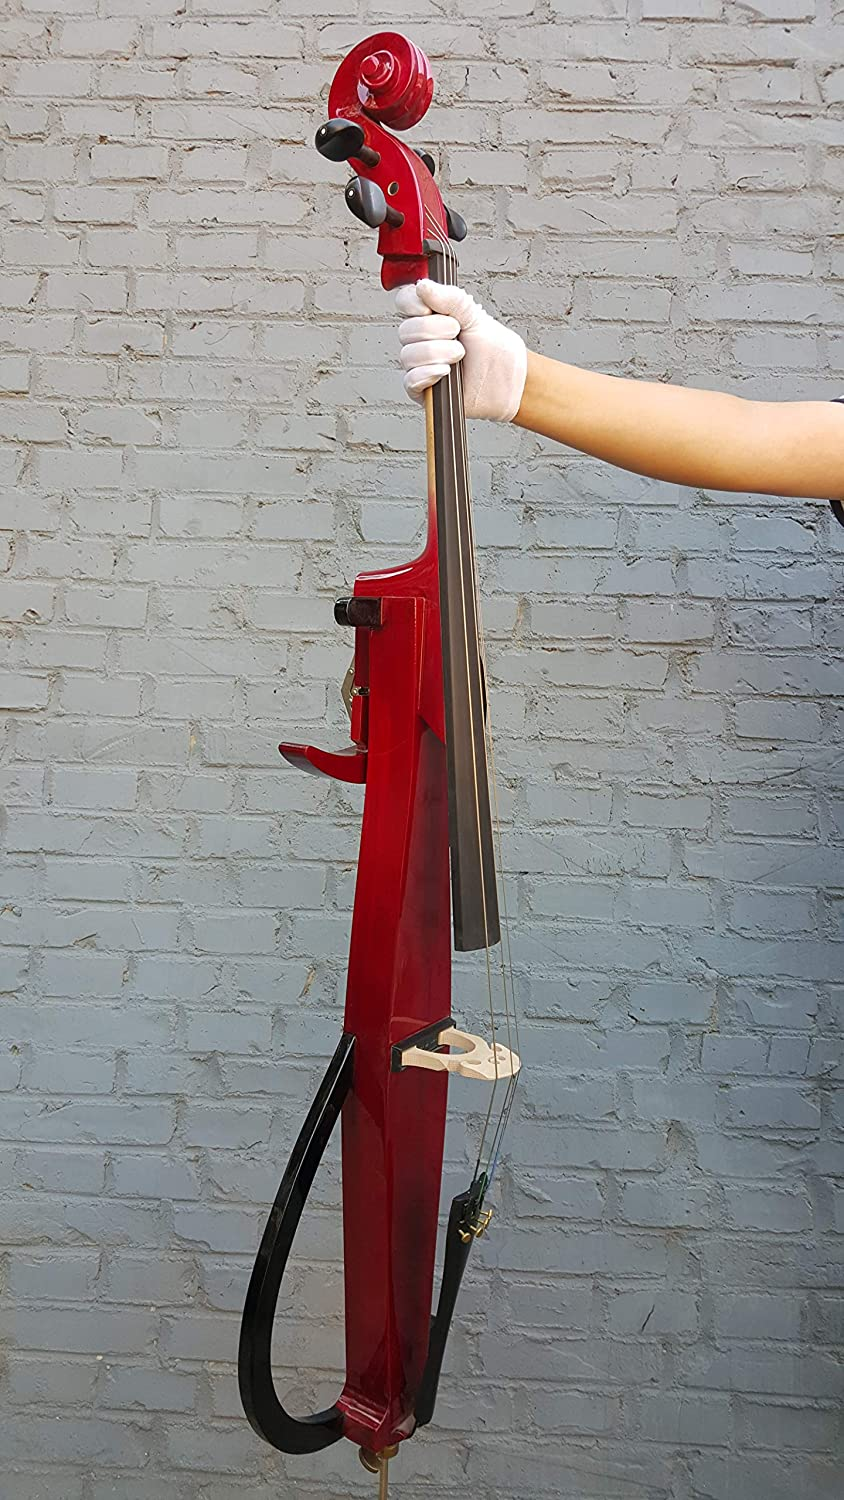 Rosin Bow Yinfente Electric Cello 4//4 Full Size Solid wood Violoncello Ebony Fittings with Bag Aux Cable White